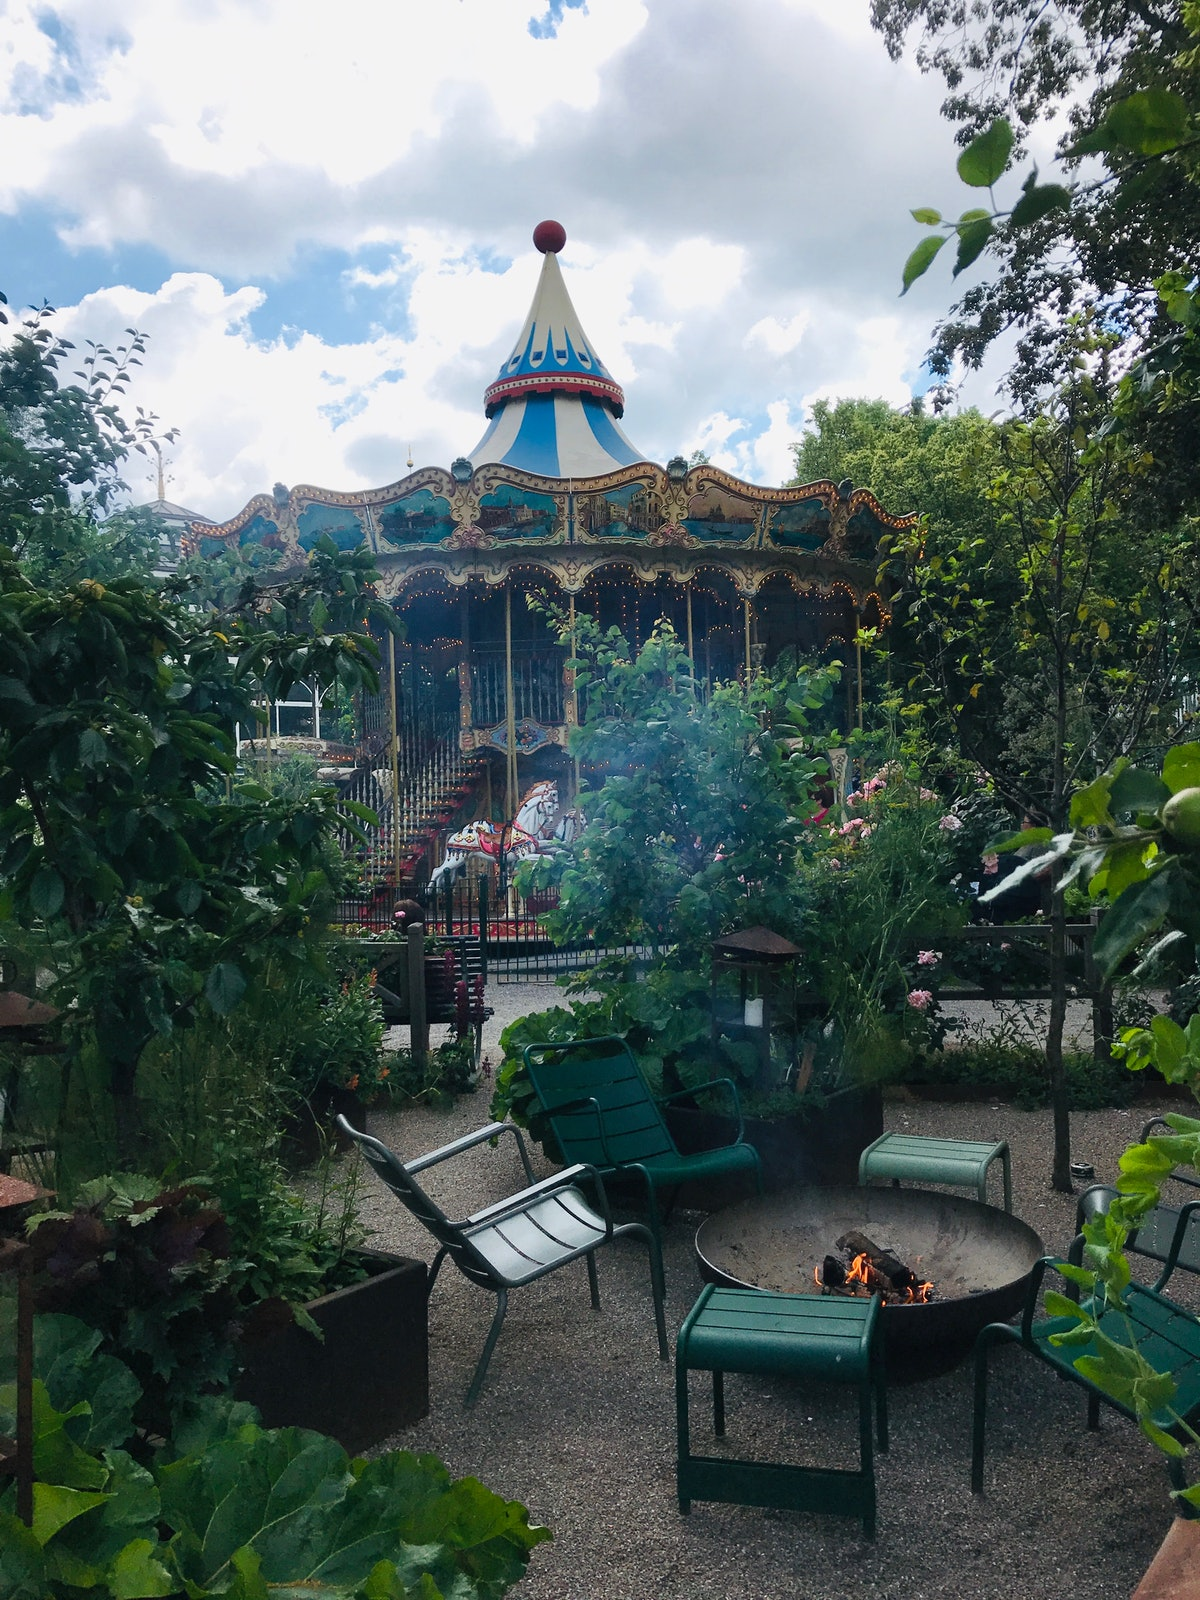 A beautiful carousel is surrounded by greenery at the Tivoli Gardens in Copenhagen, Denmark.